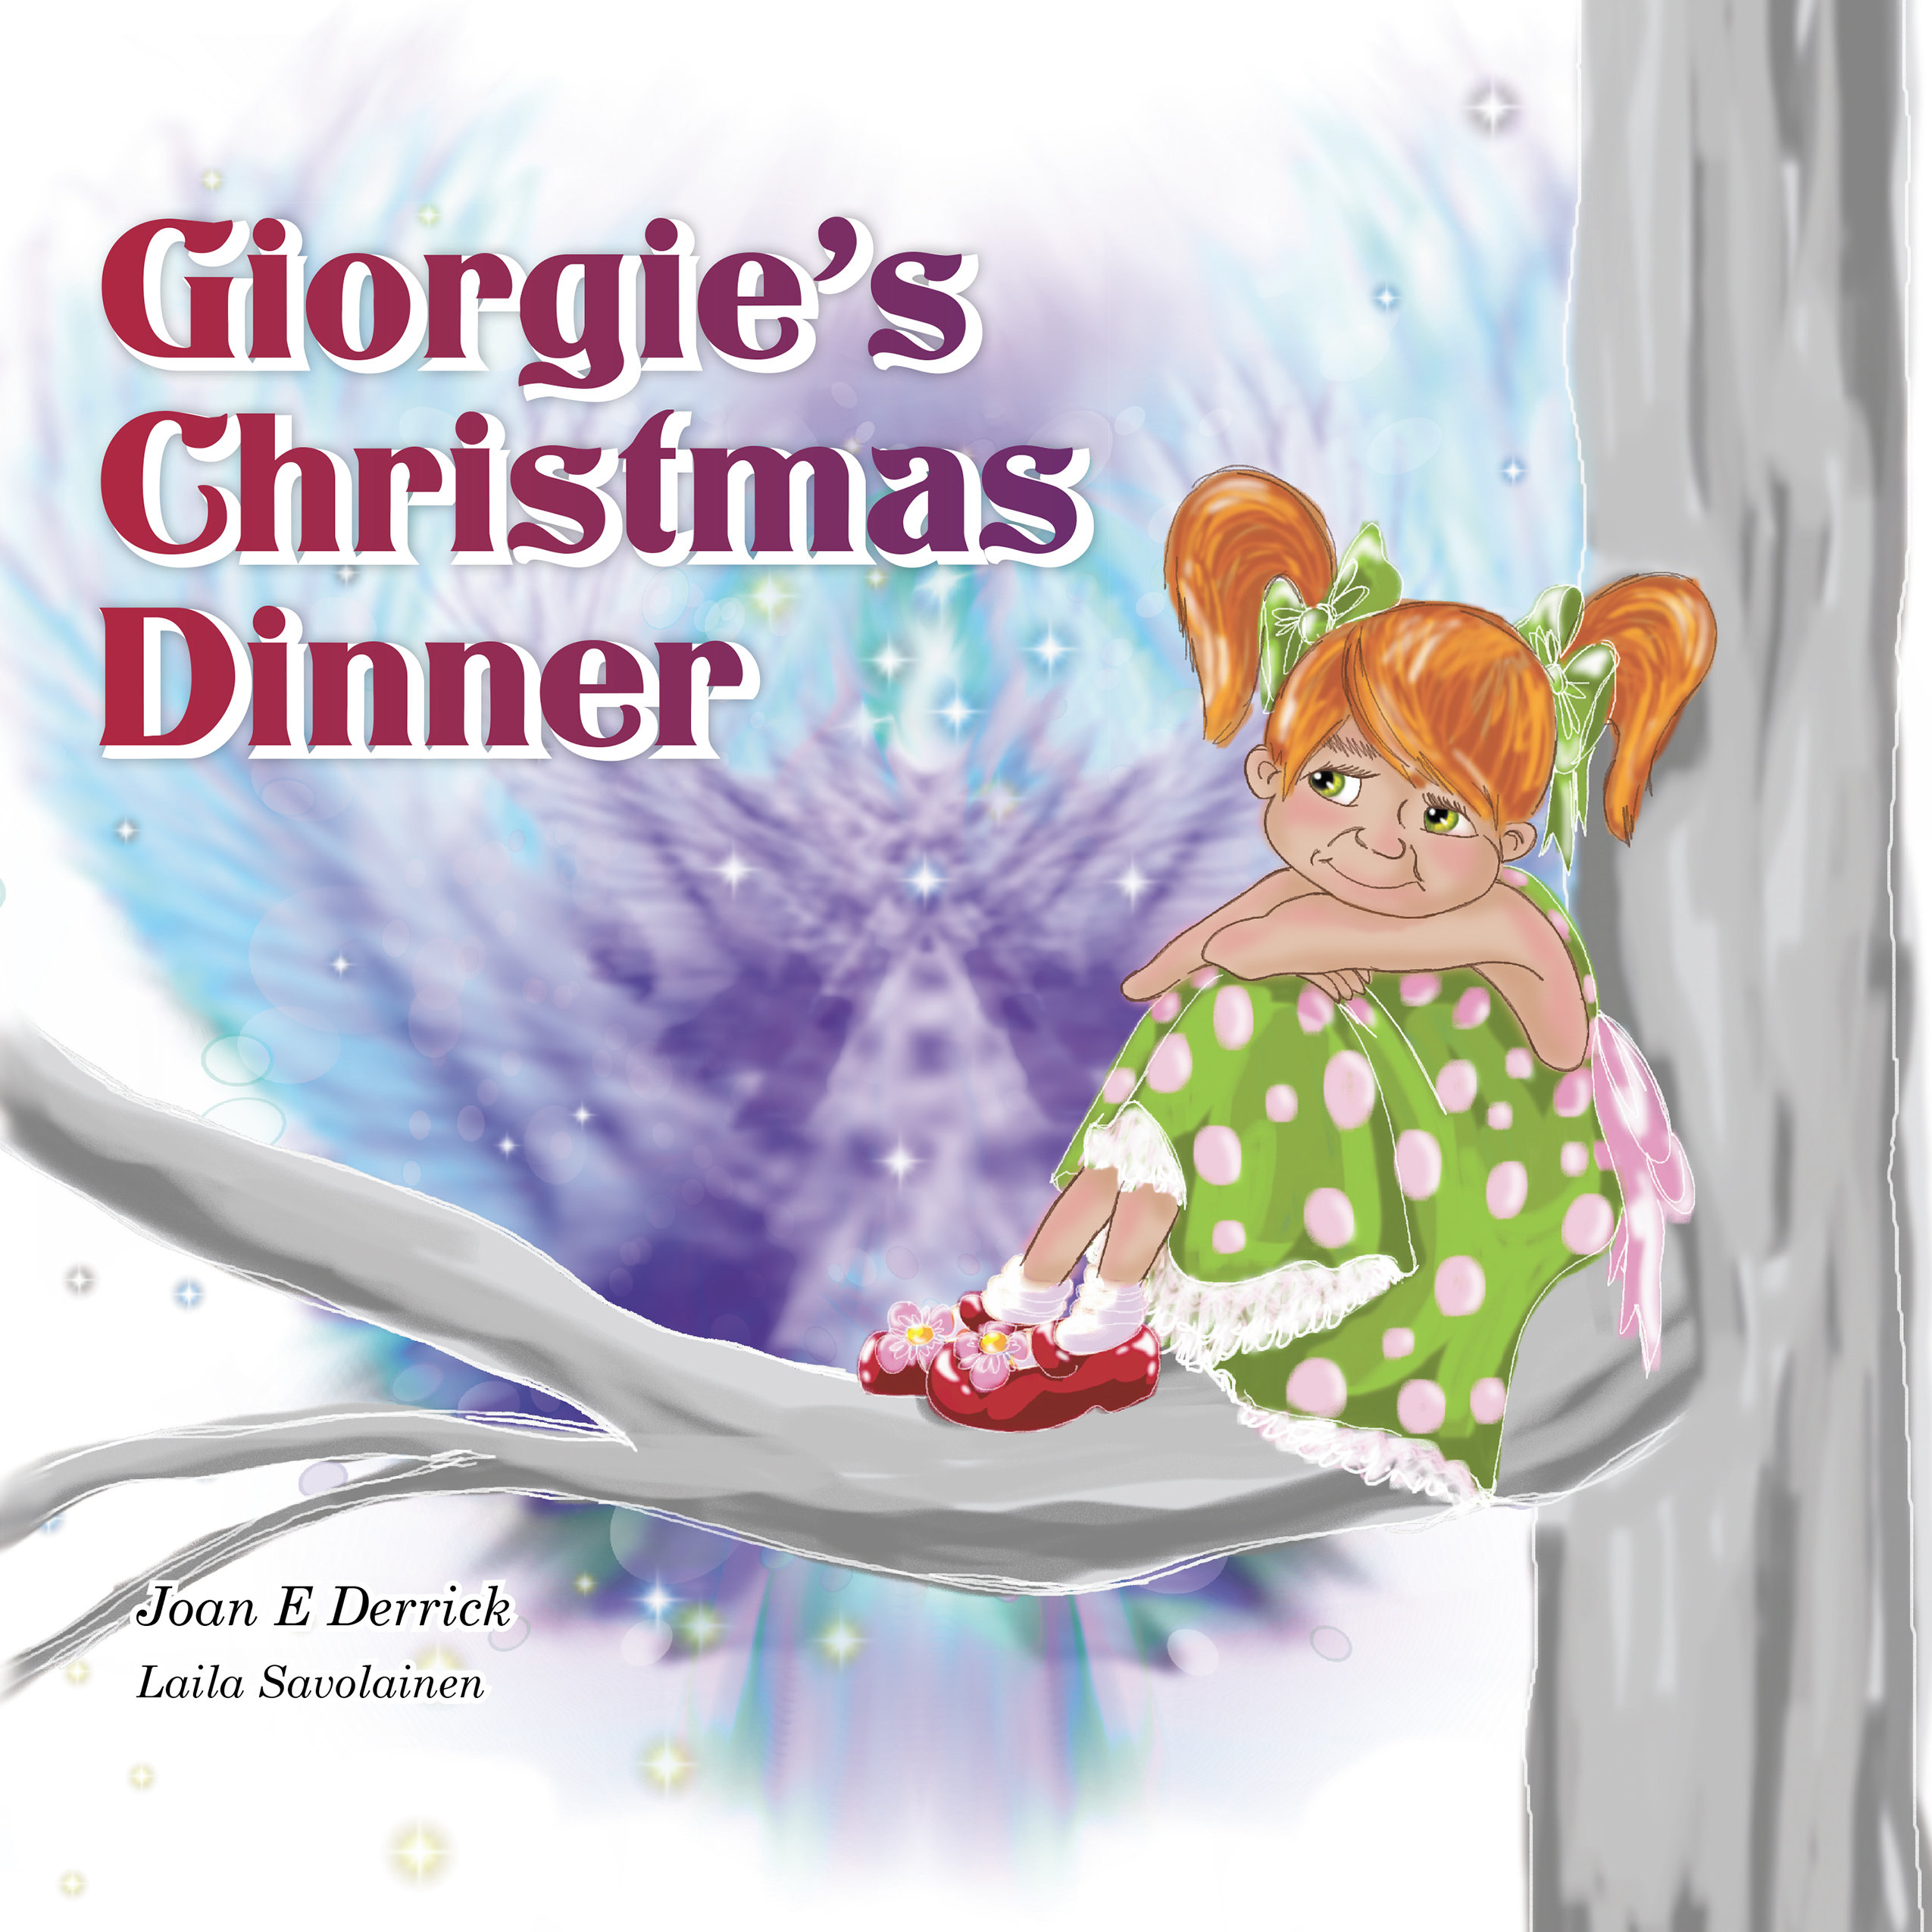 Giorgie's Christmas Dinner- Soft cover 00004